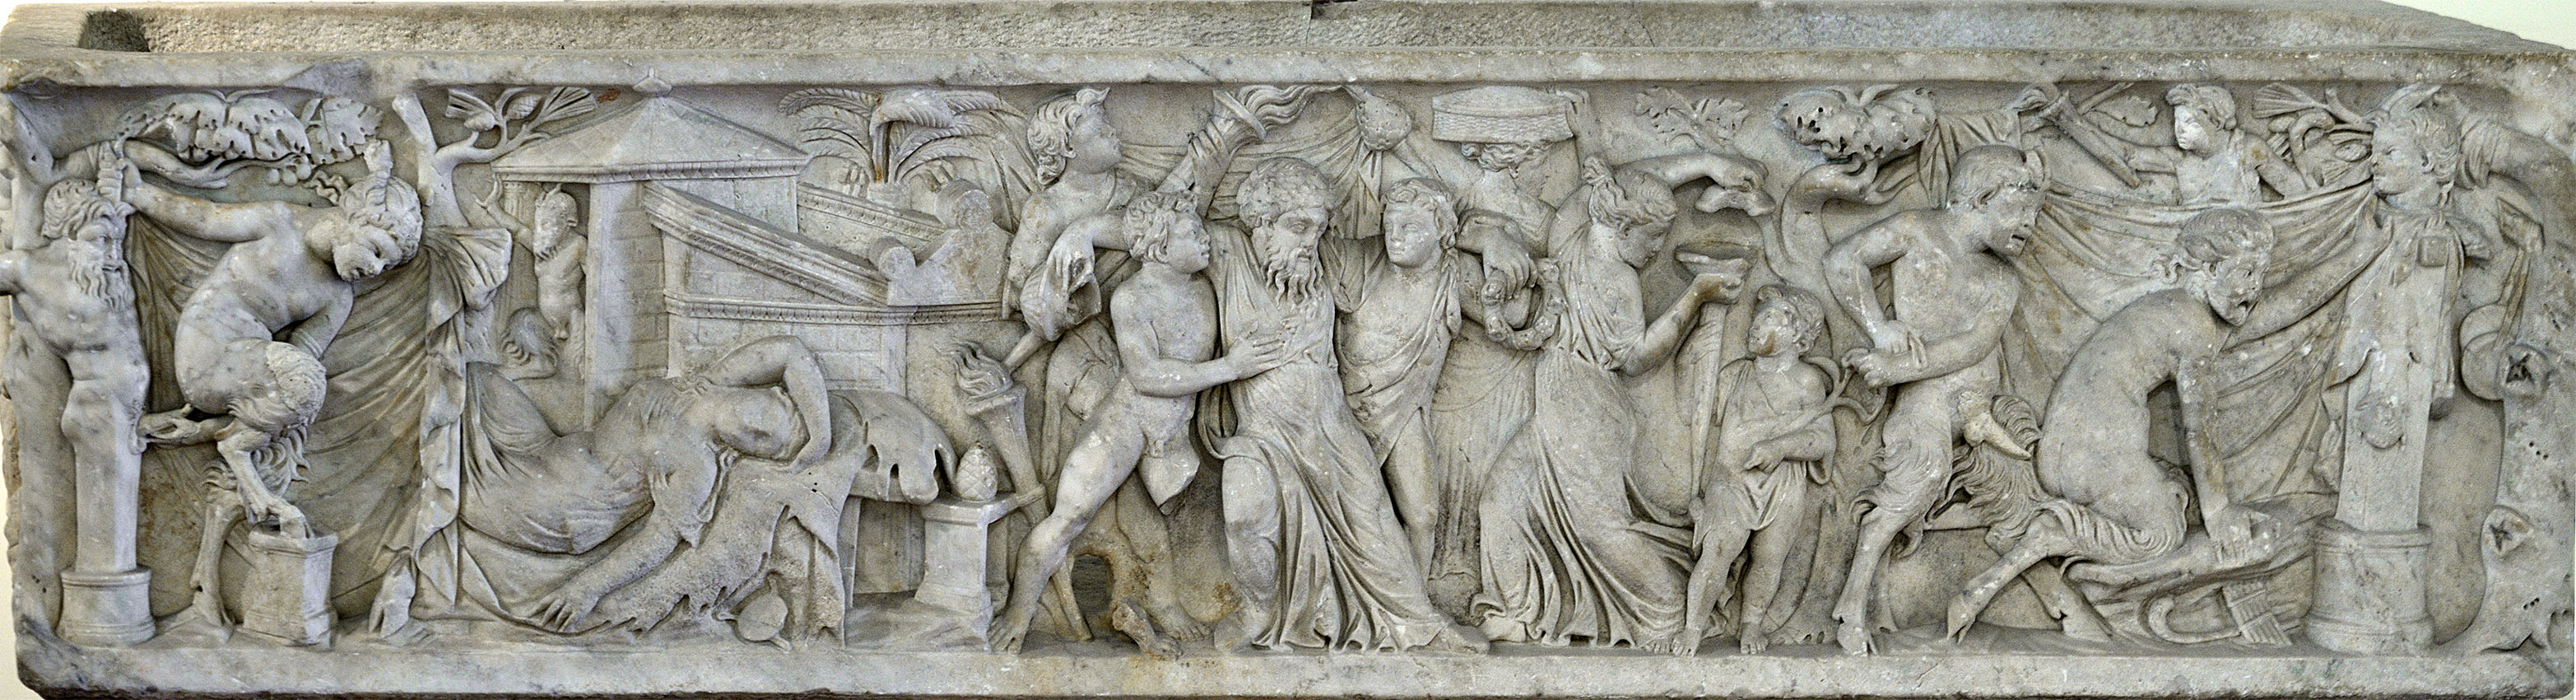 Sarcophagus with scenes of bacchanalia. White marble. 140—160 CE. 204 × 510 × 66 cm. Inv. No. 27710. Naples, National Archaeological Museum